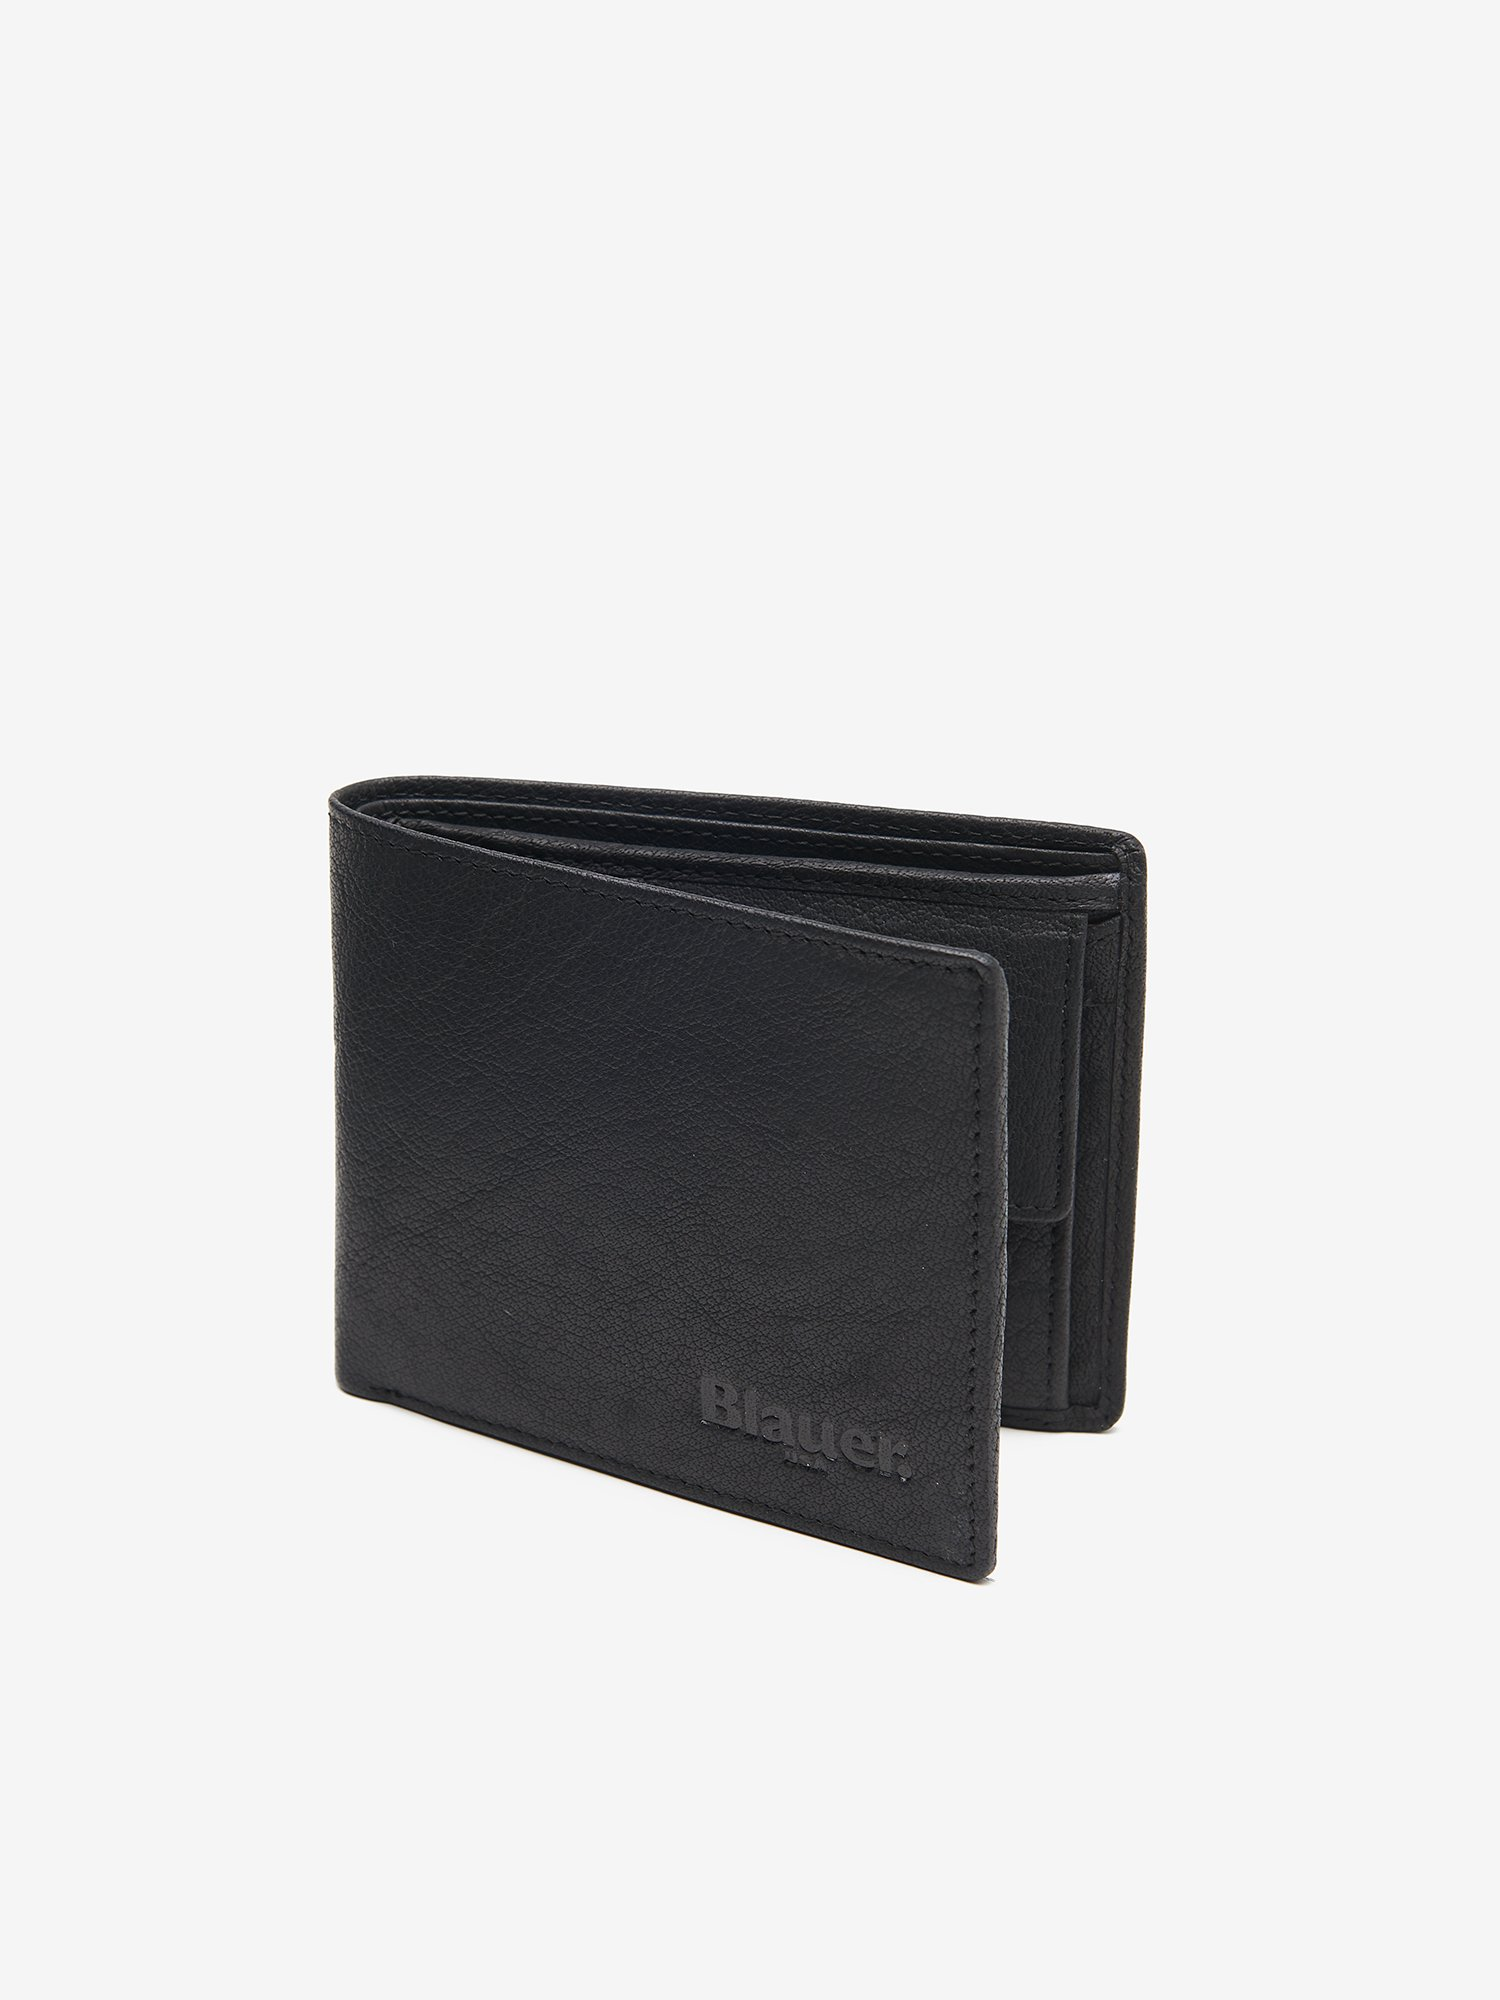 USED ​​TROPPER WALLET - Blauer